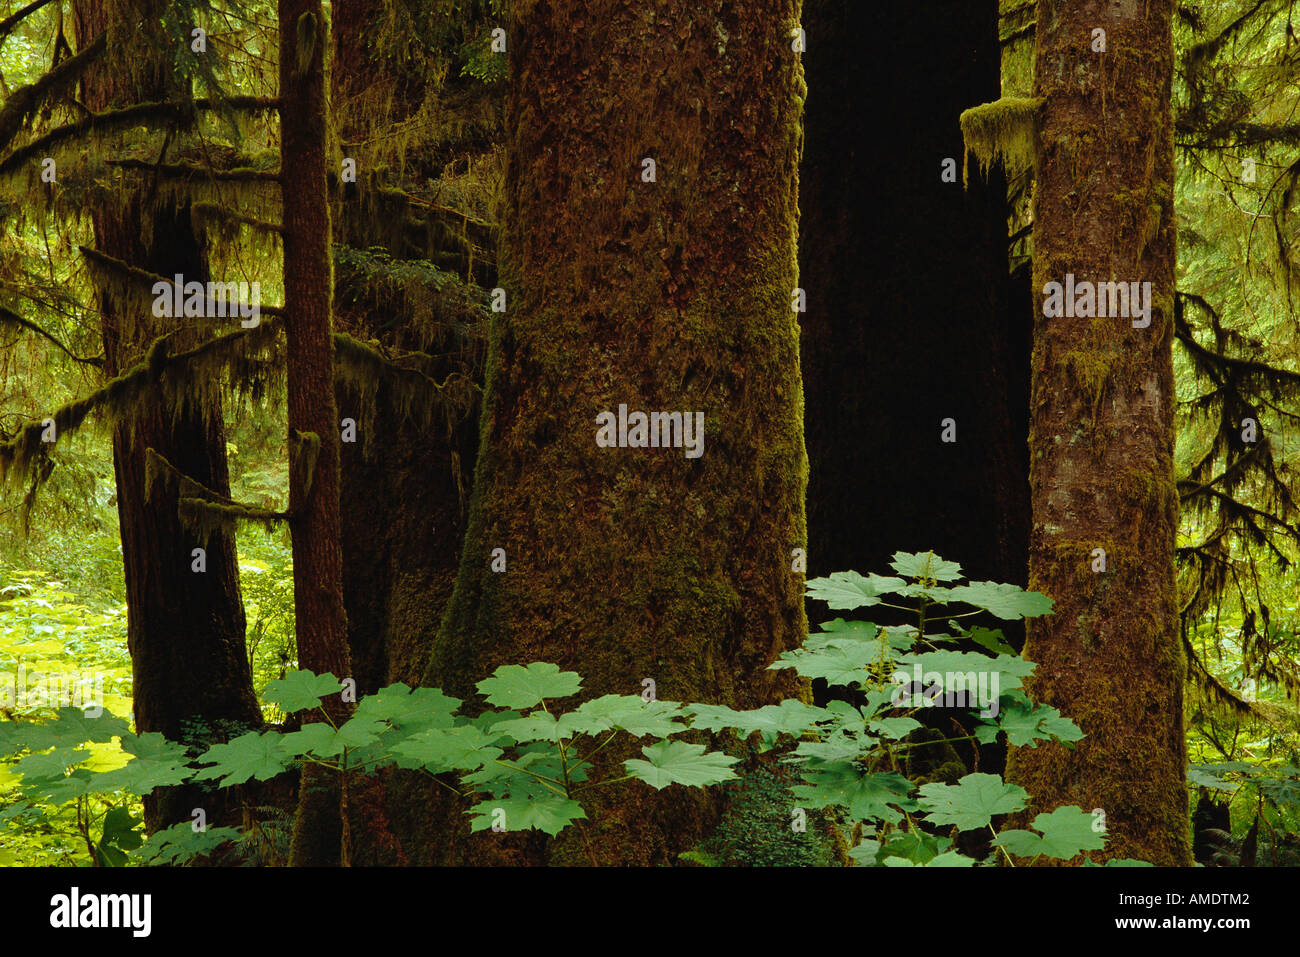 british columbia supreme court is scheduled to hear four civil applications in. Old Growth Forest Clayoquot Sound British Columbia Canada Stock Photo Alamy